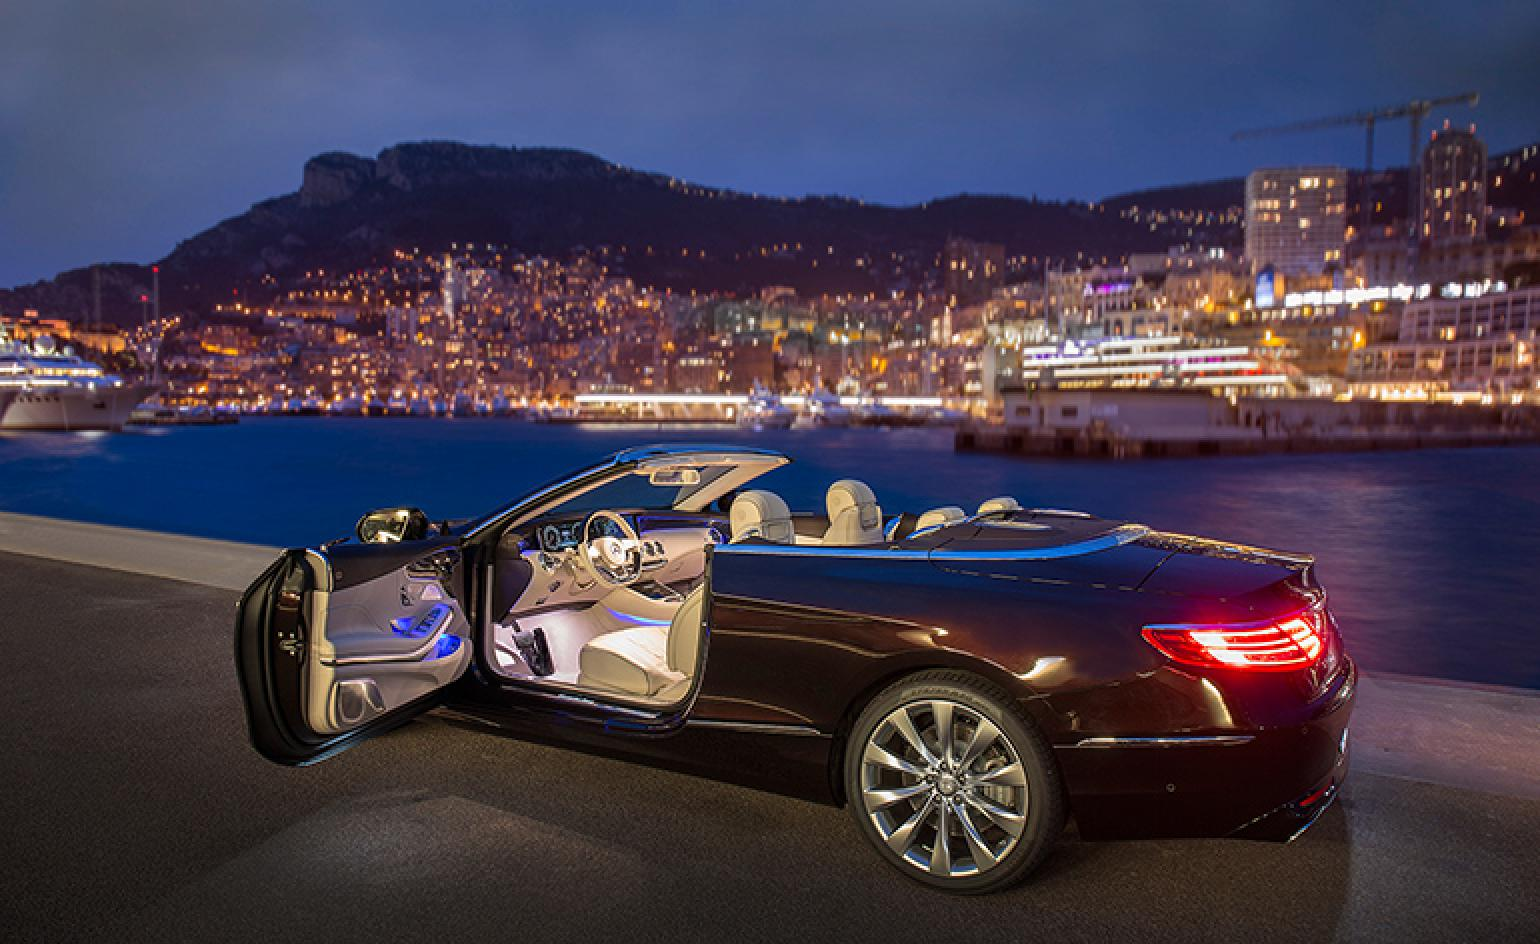 Super size: the Mercedes S-Class Cabriolet is a drop-top with grandeur